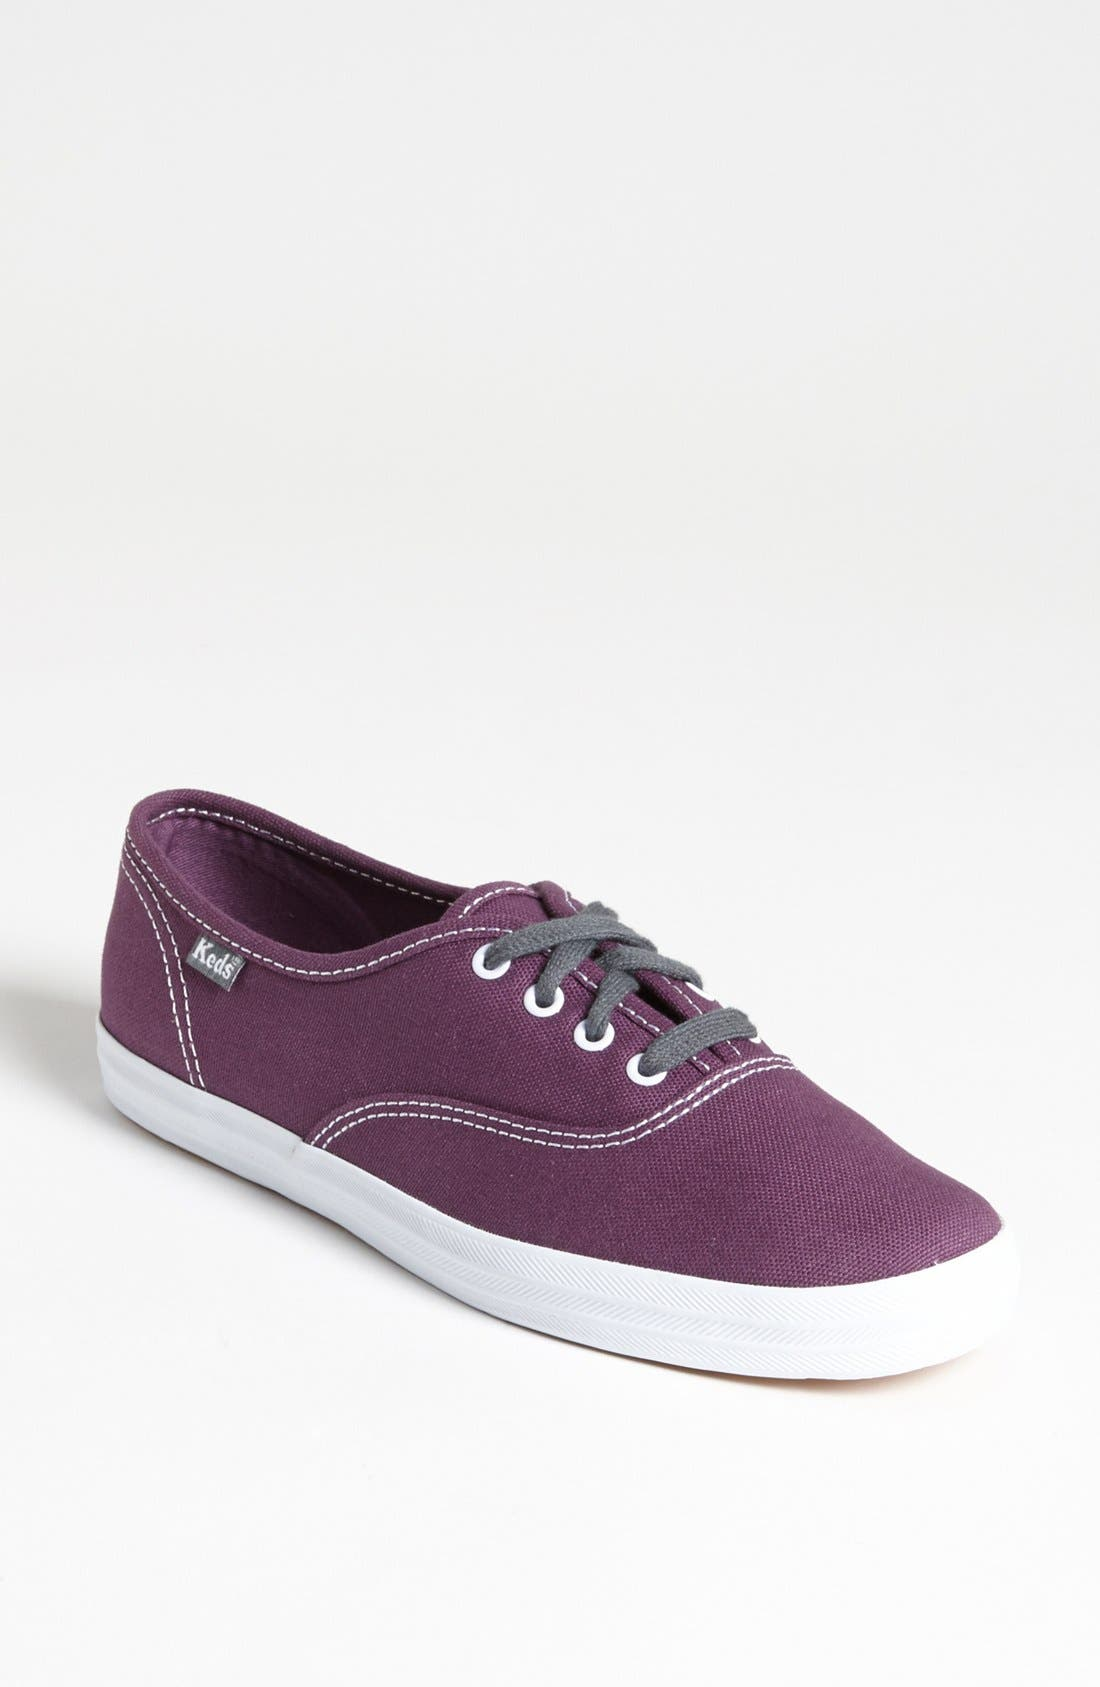 Alternate Image 1 Selected - Keds® 'Champion -2K' Sneaker (Women)